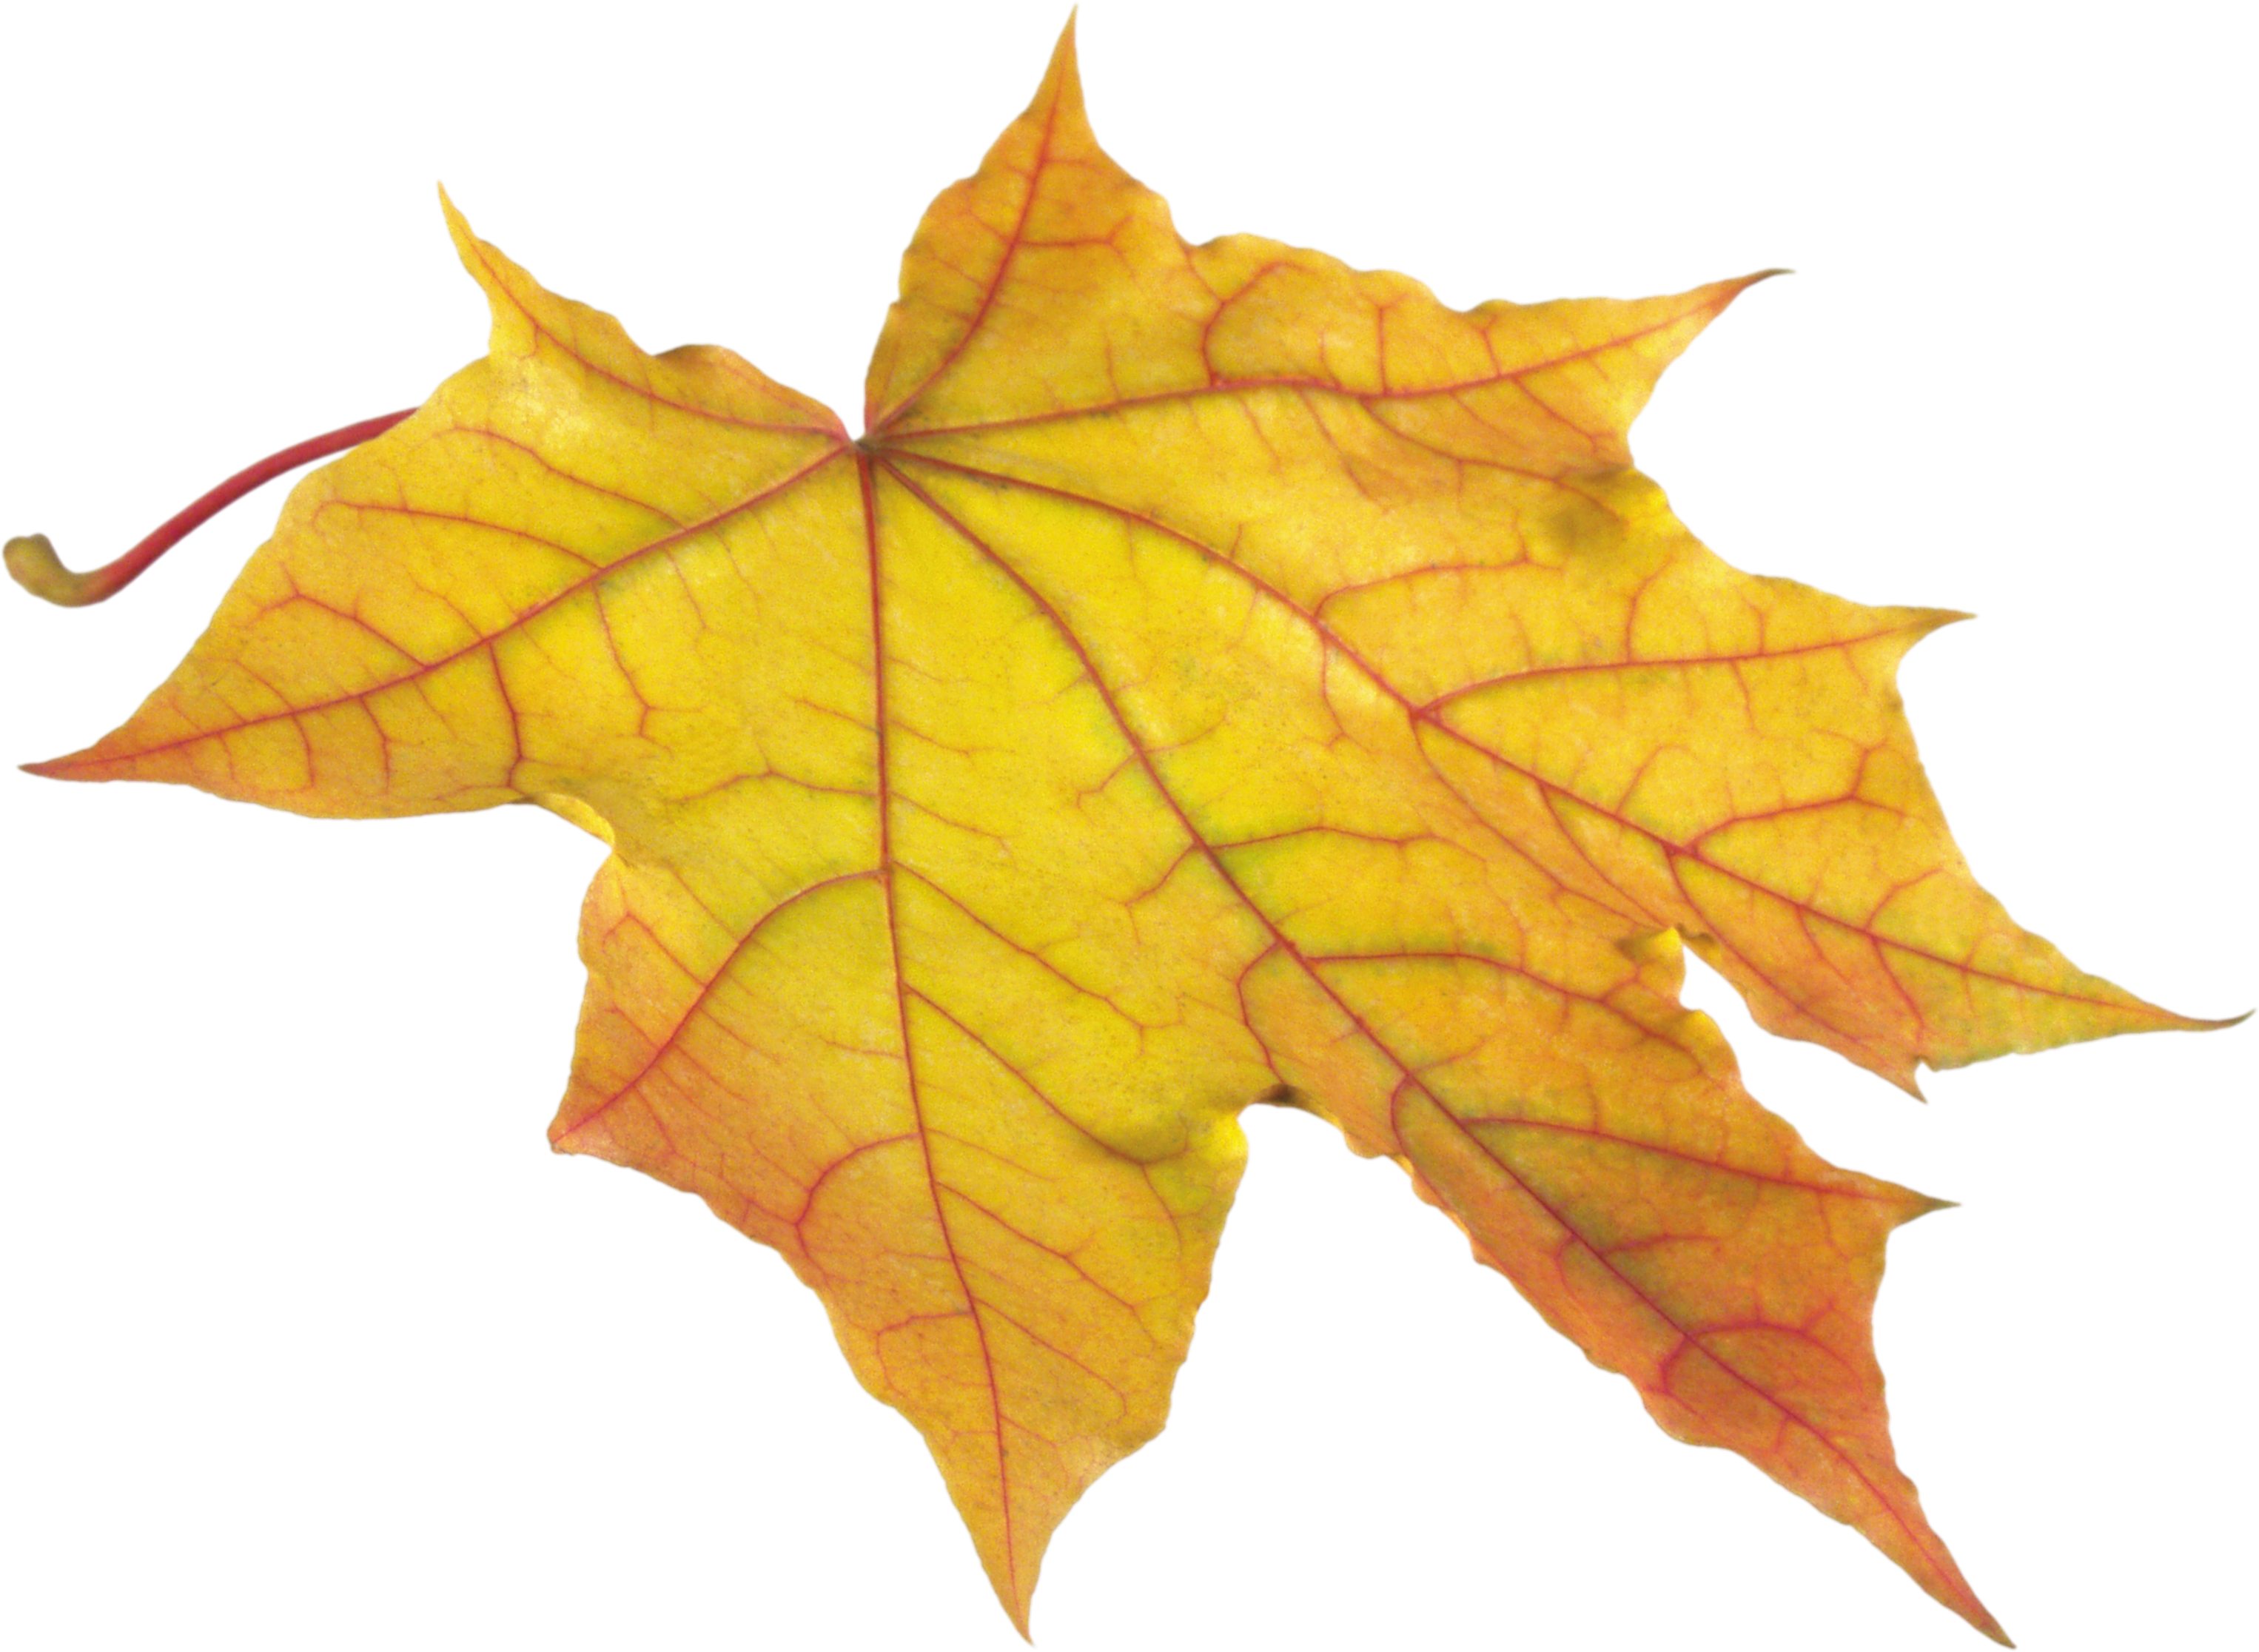 Yellow Leaf PNG Image - PurePNG | Free transparent CC0 PNG Image Library